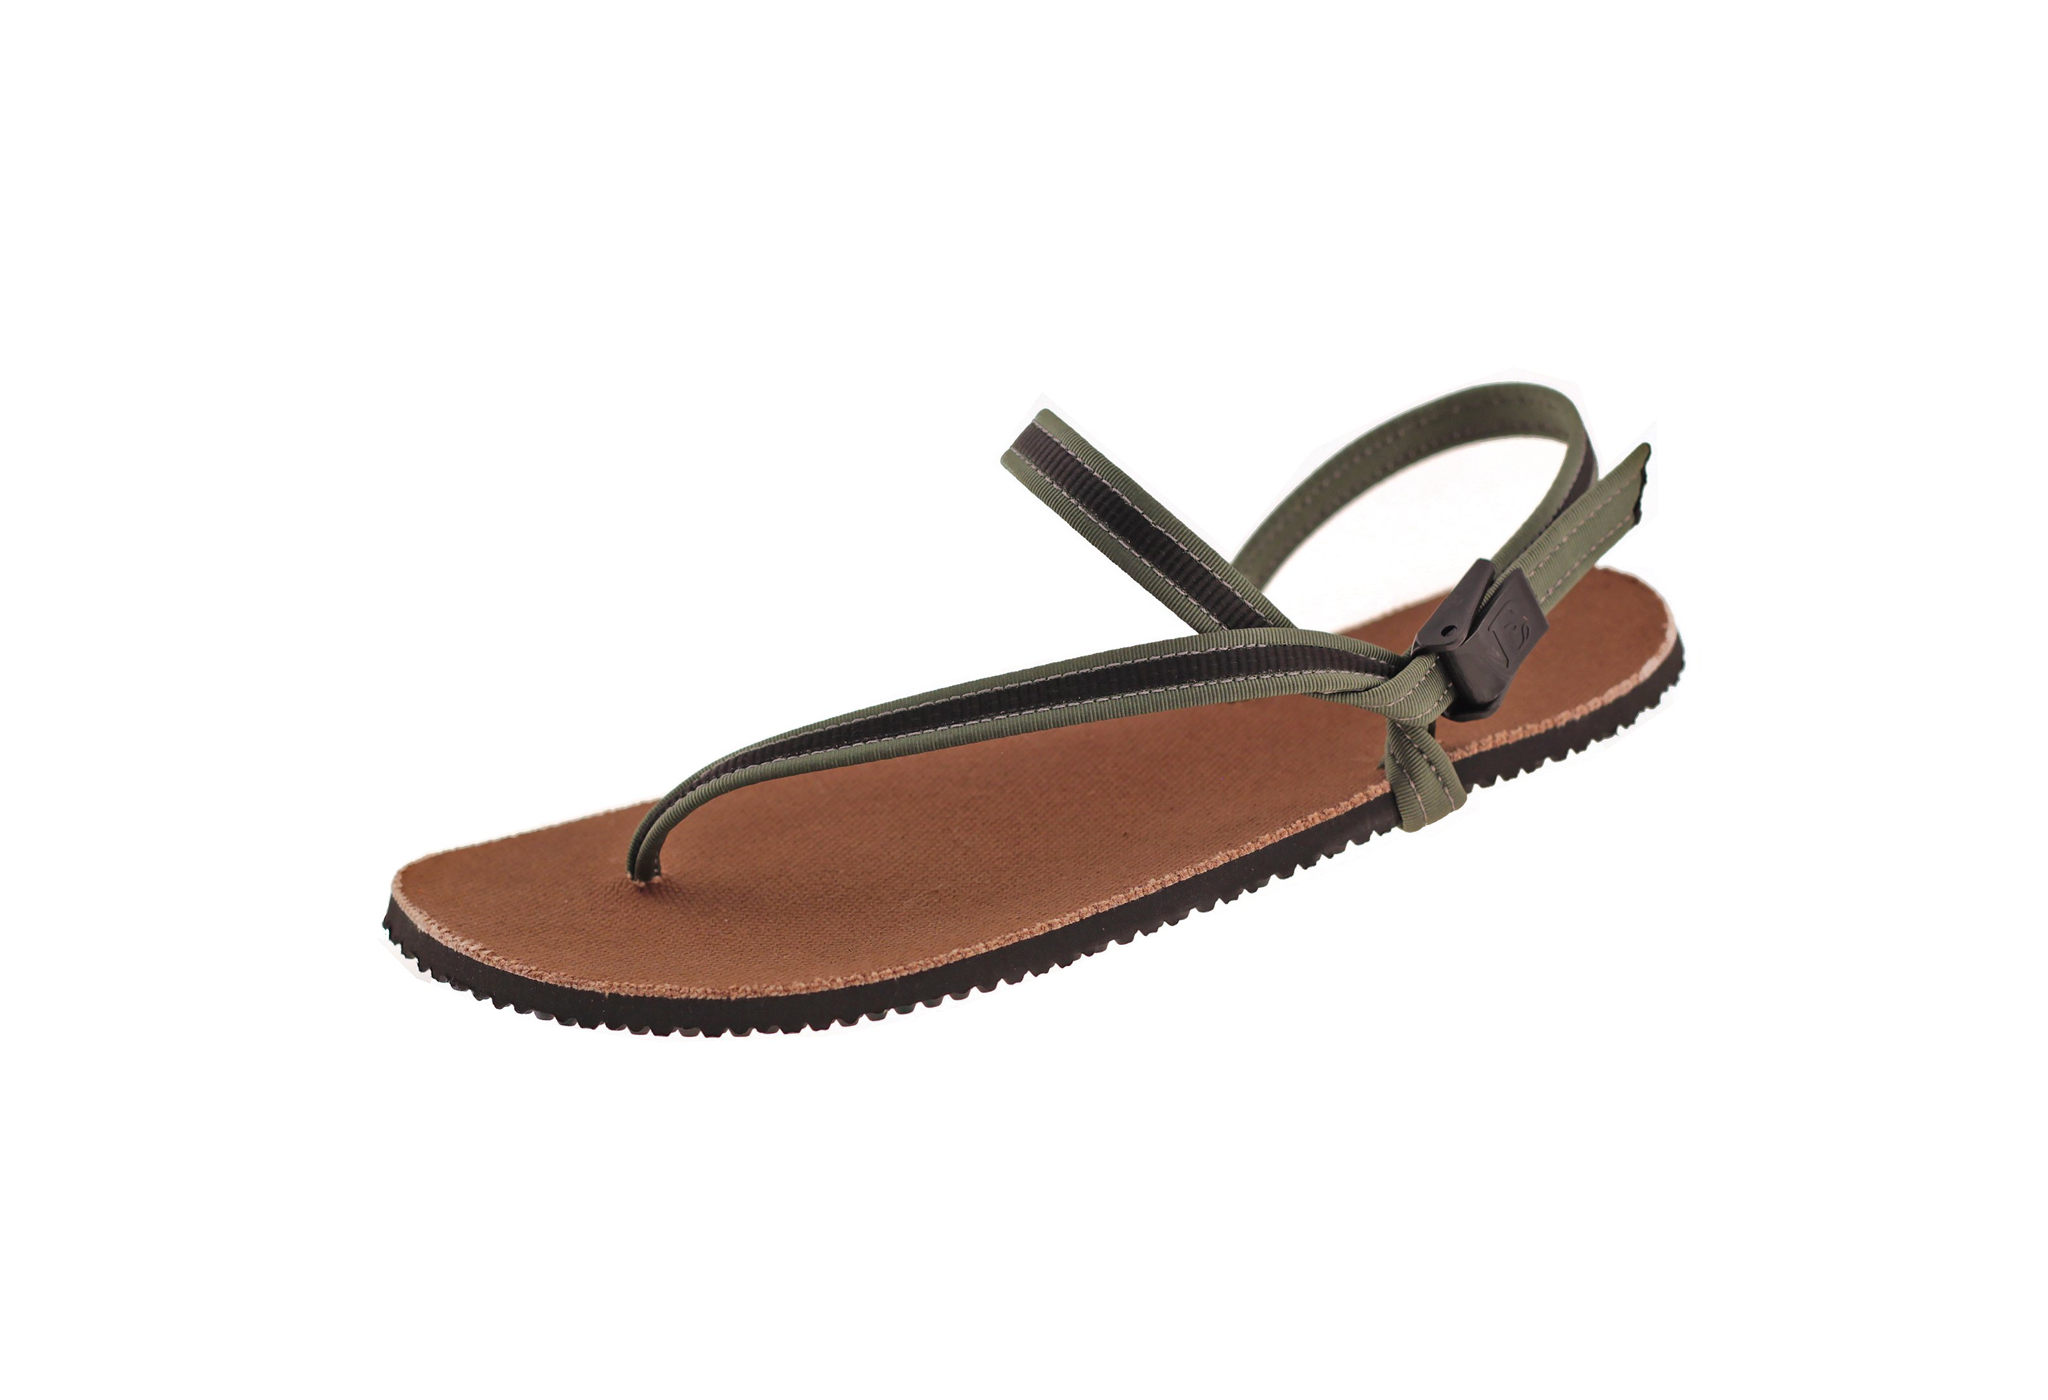 Circadian Adventure Sandals Bioenergy Products